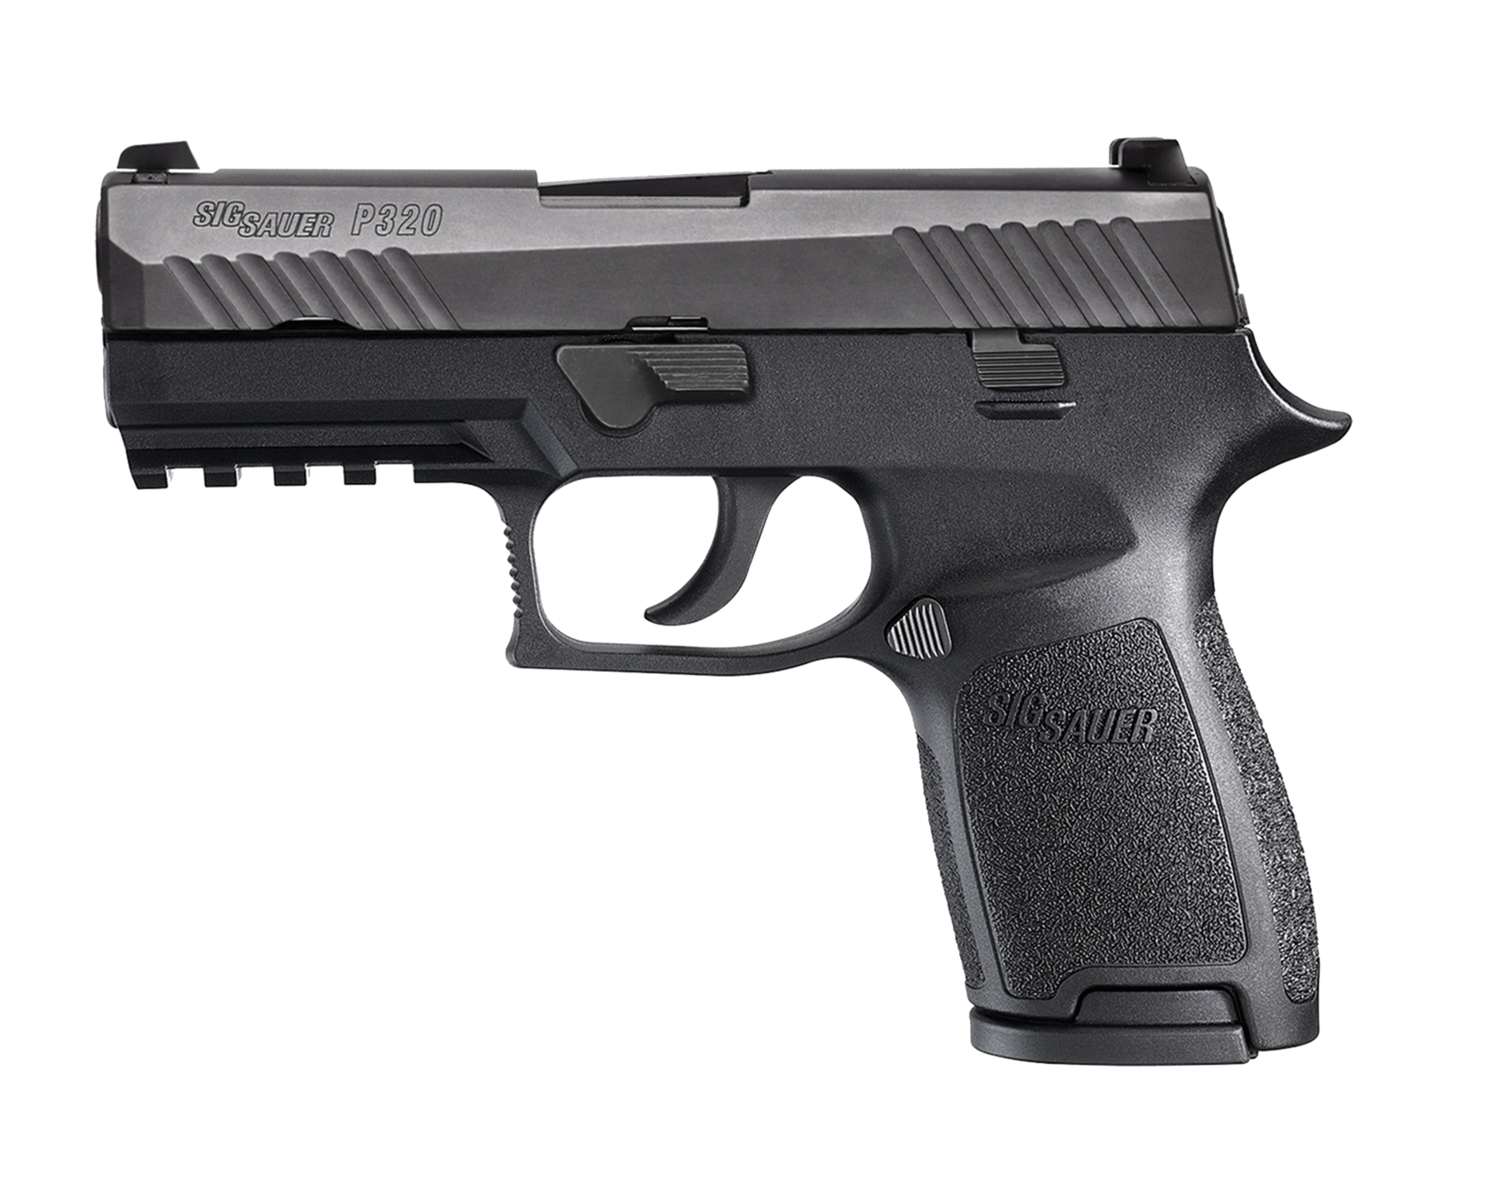 """80% Sig Sauer - P320 Full Size Double 40 Smith & Wesson (S&W) 4.7"""" 10+1 - 2 Mags - Black Polymer Grip - Nitron Stainless Steel"""